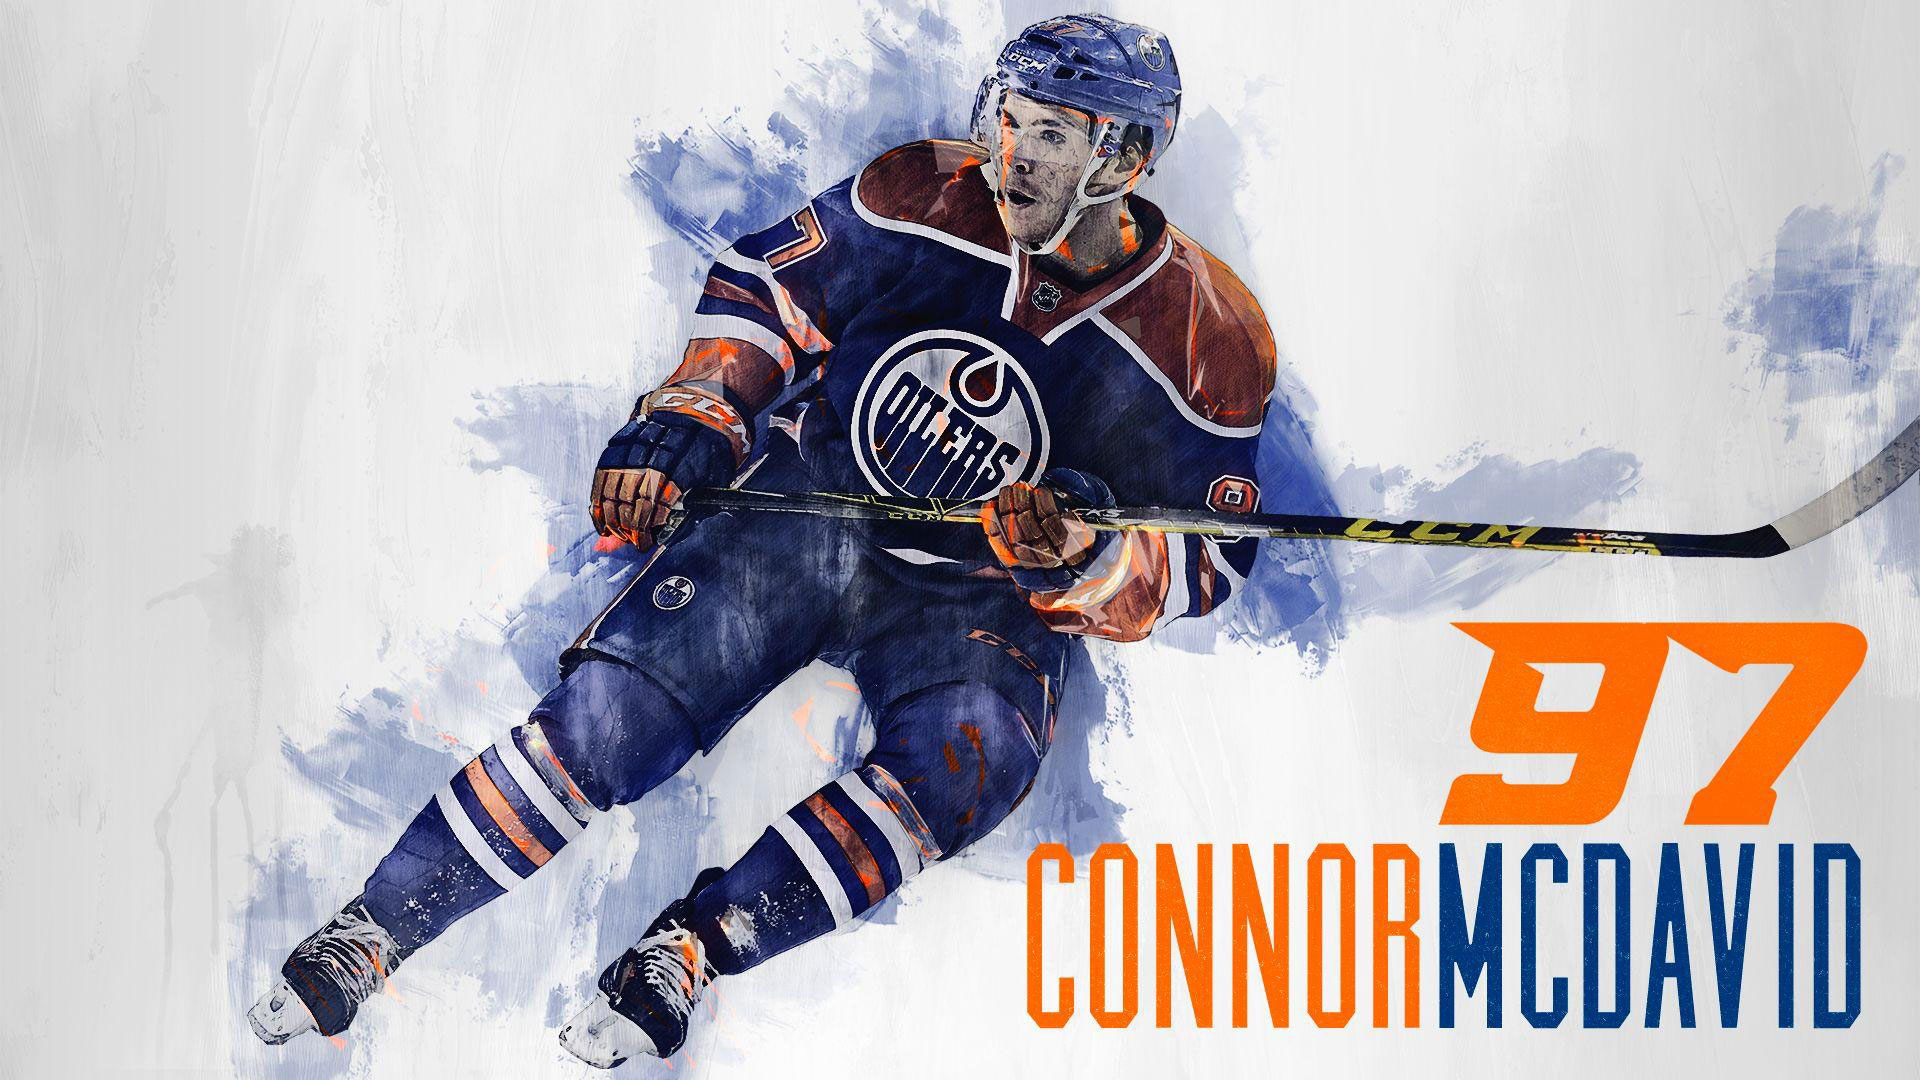 Connor McDavid Wallpaper